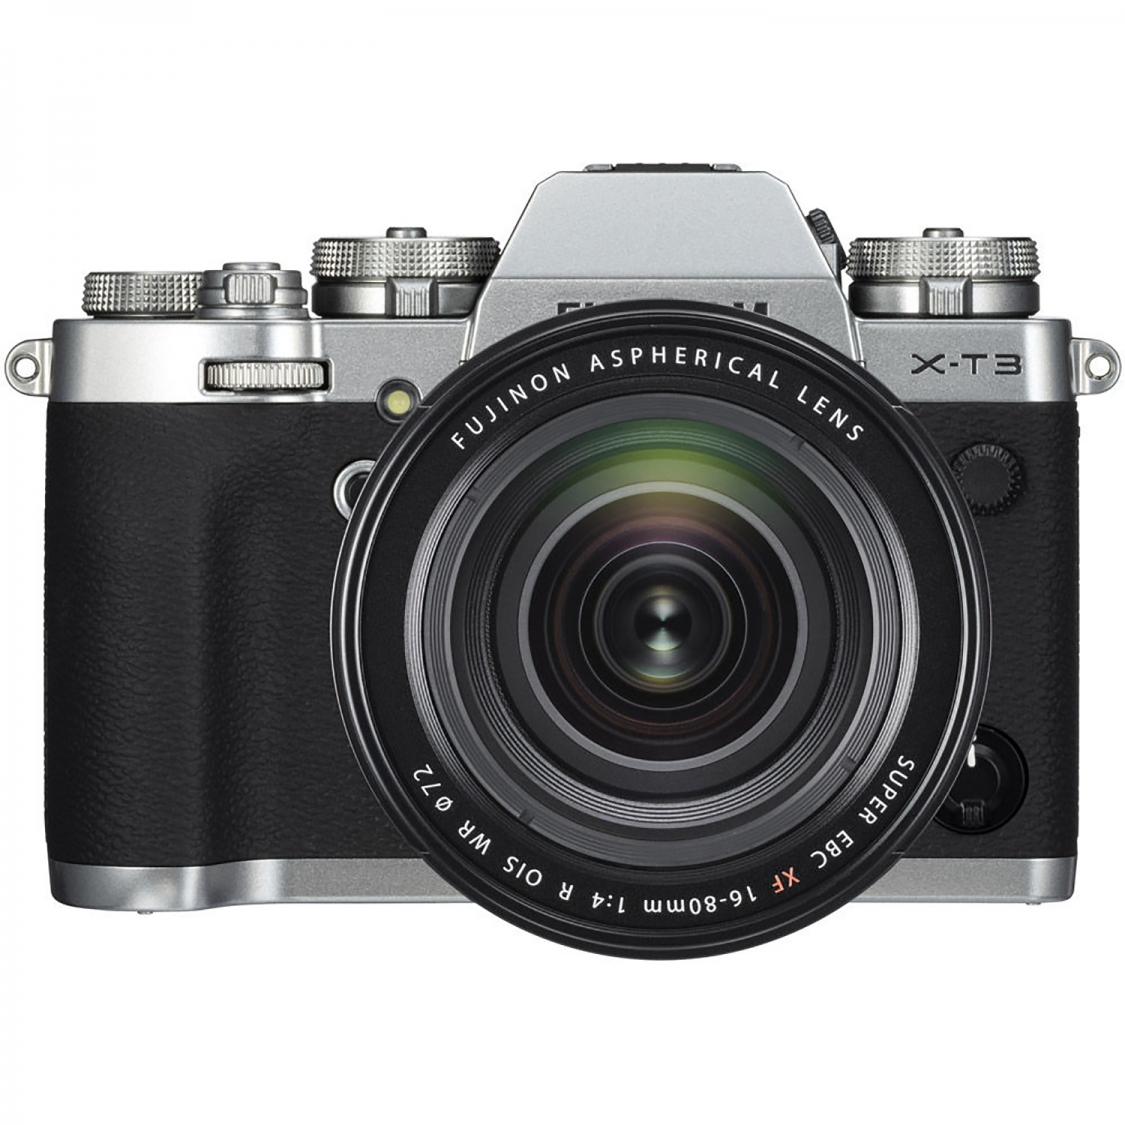 Fujifilm X-T3 Silver with 16-80mm f4 Lens